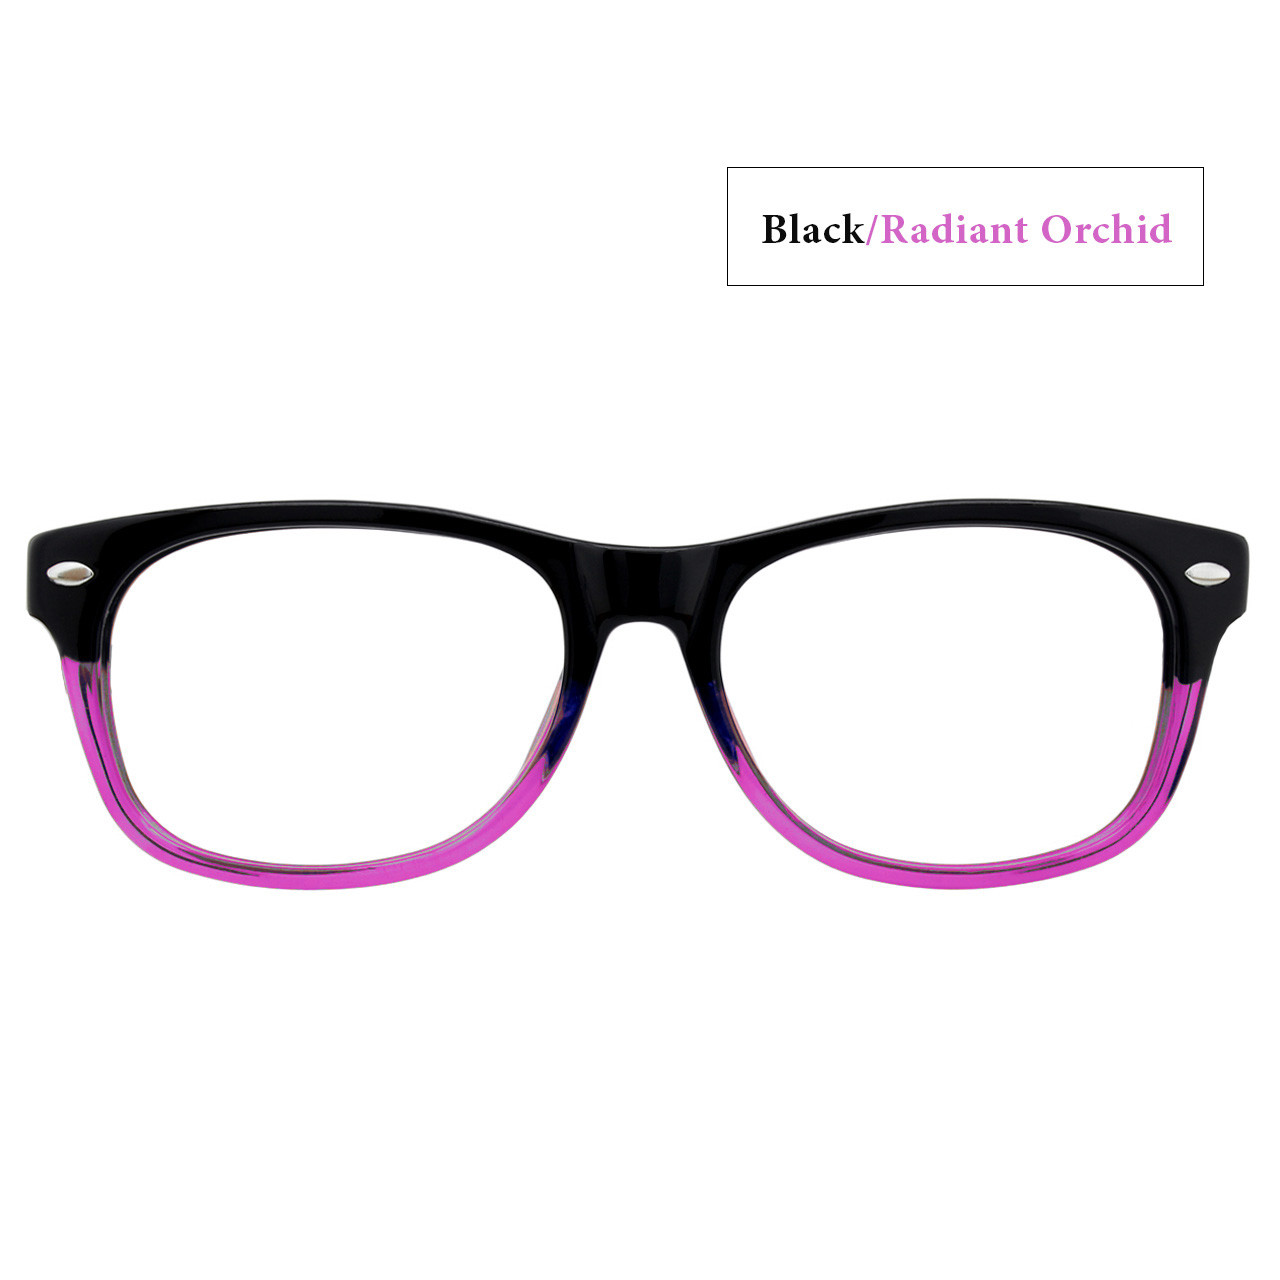 Black/Radiant Orchid